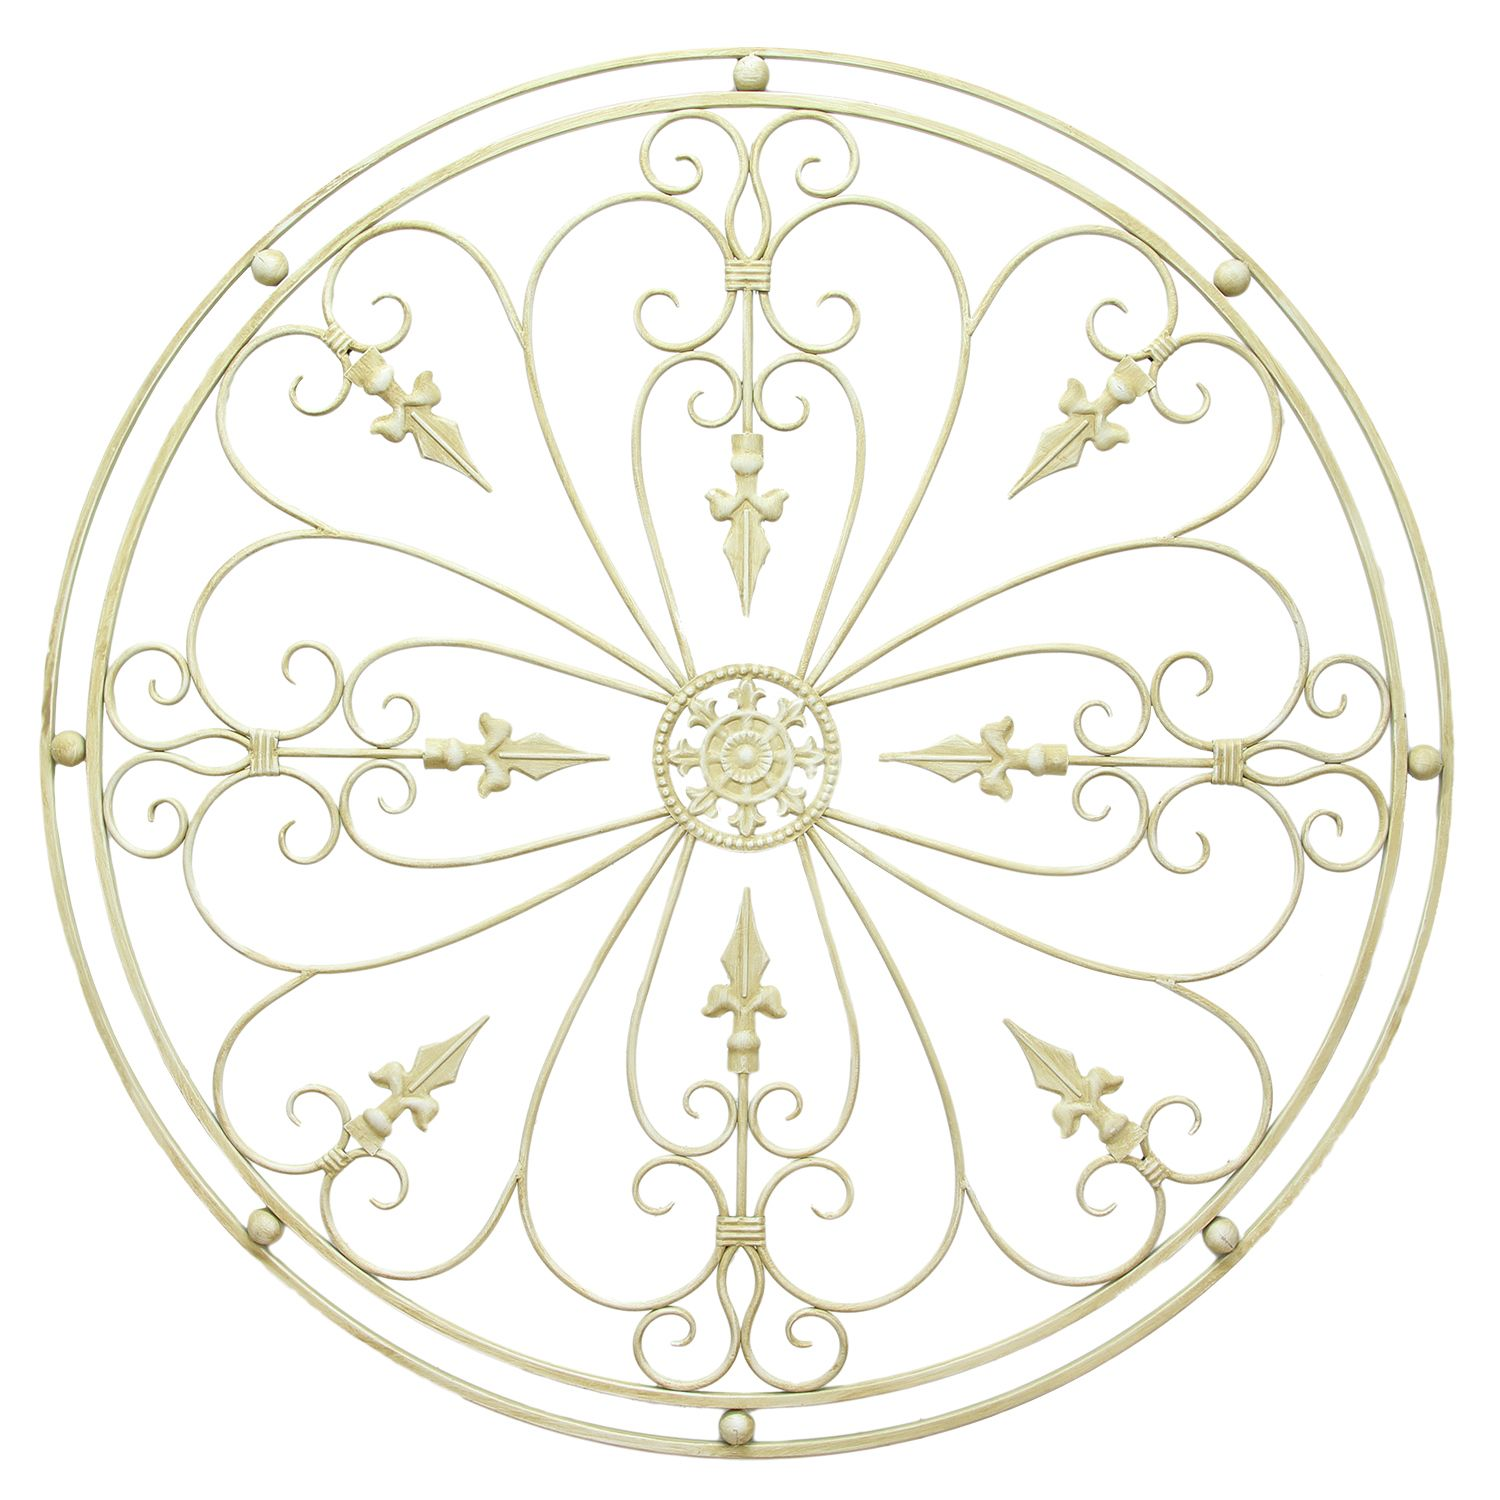 Add dimension to a wall in your home with the antique medallion wall